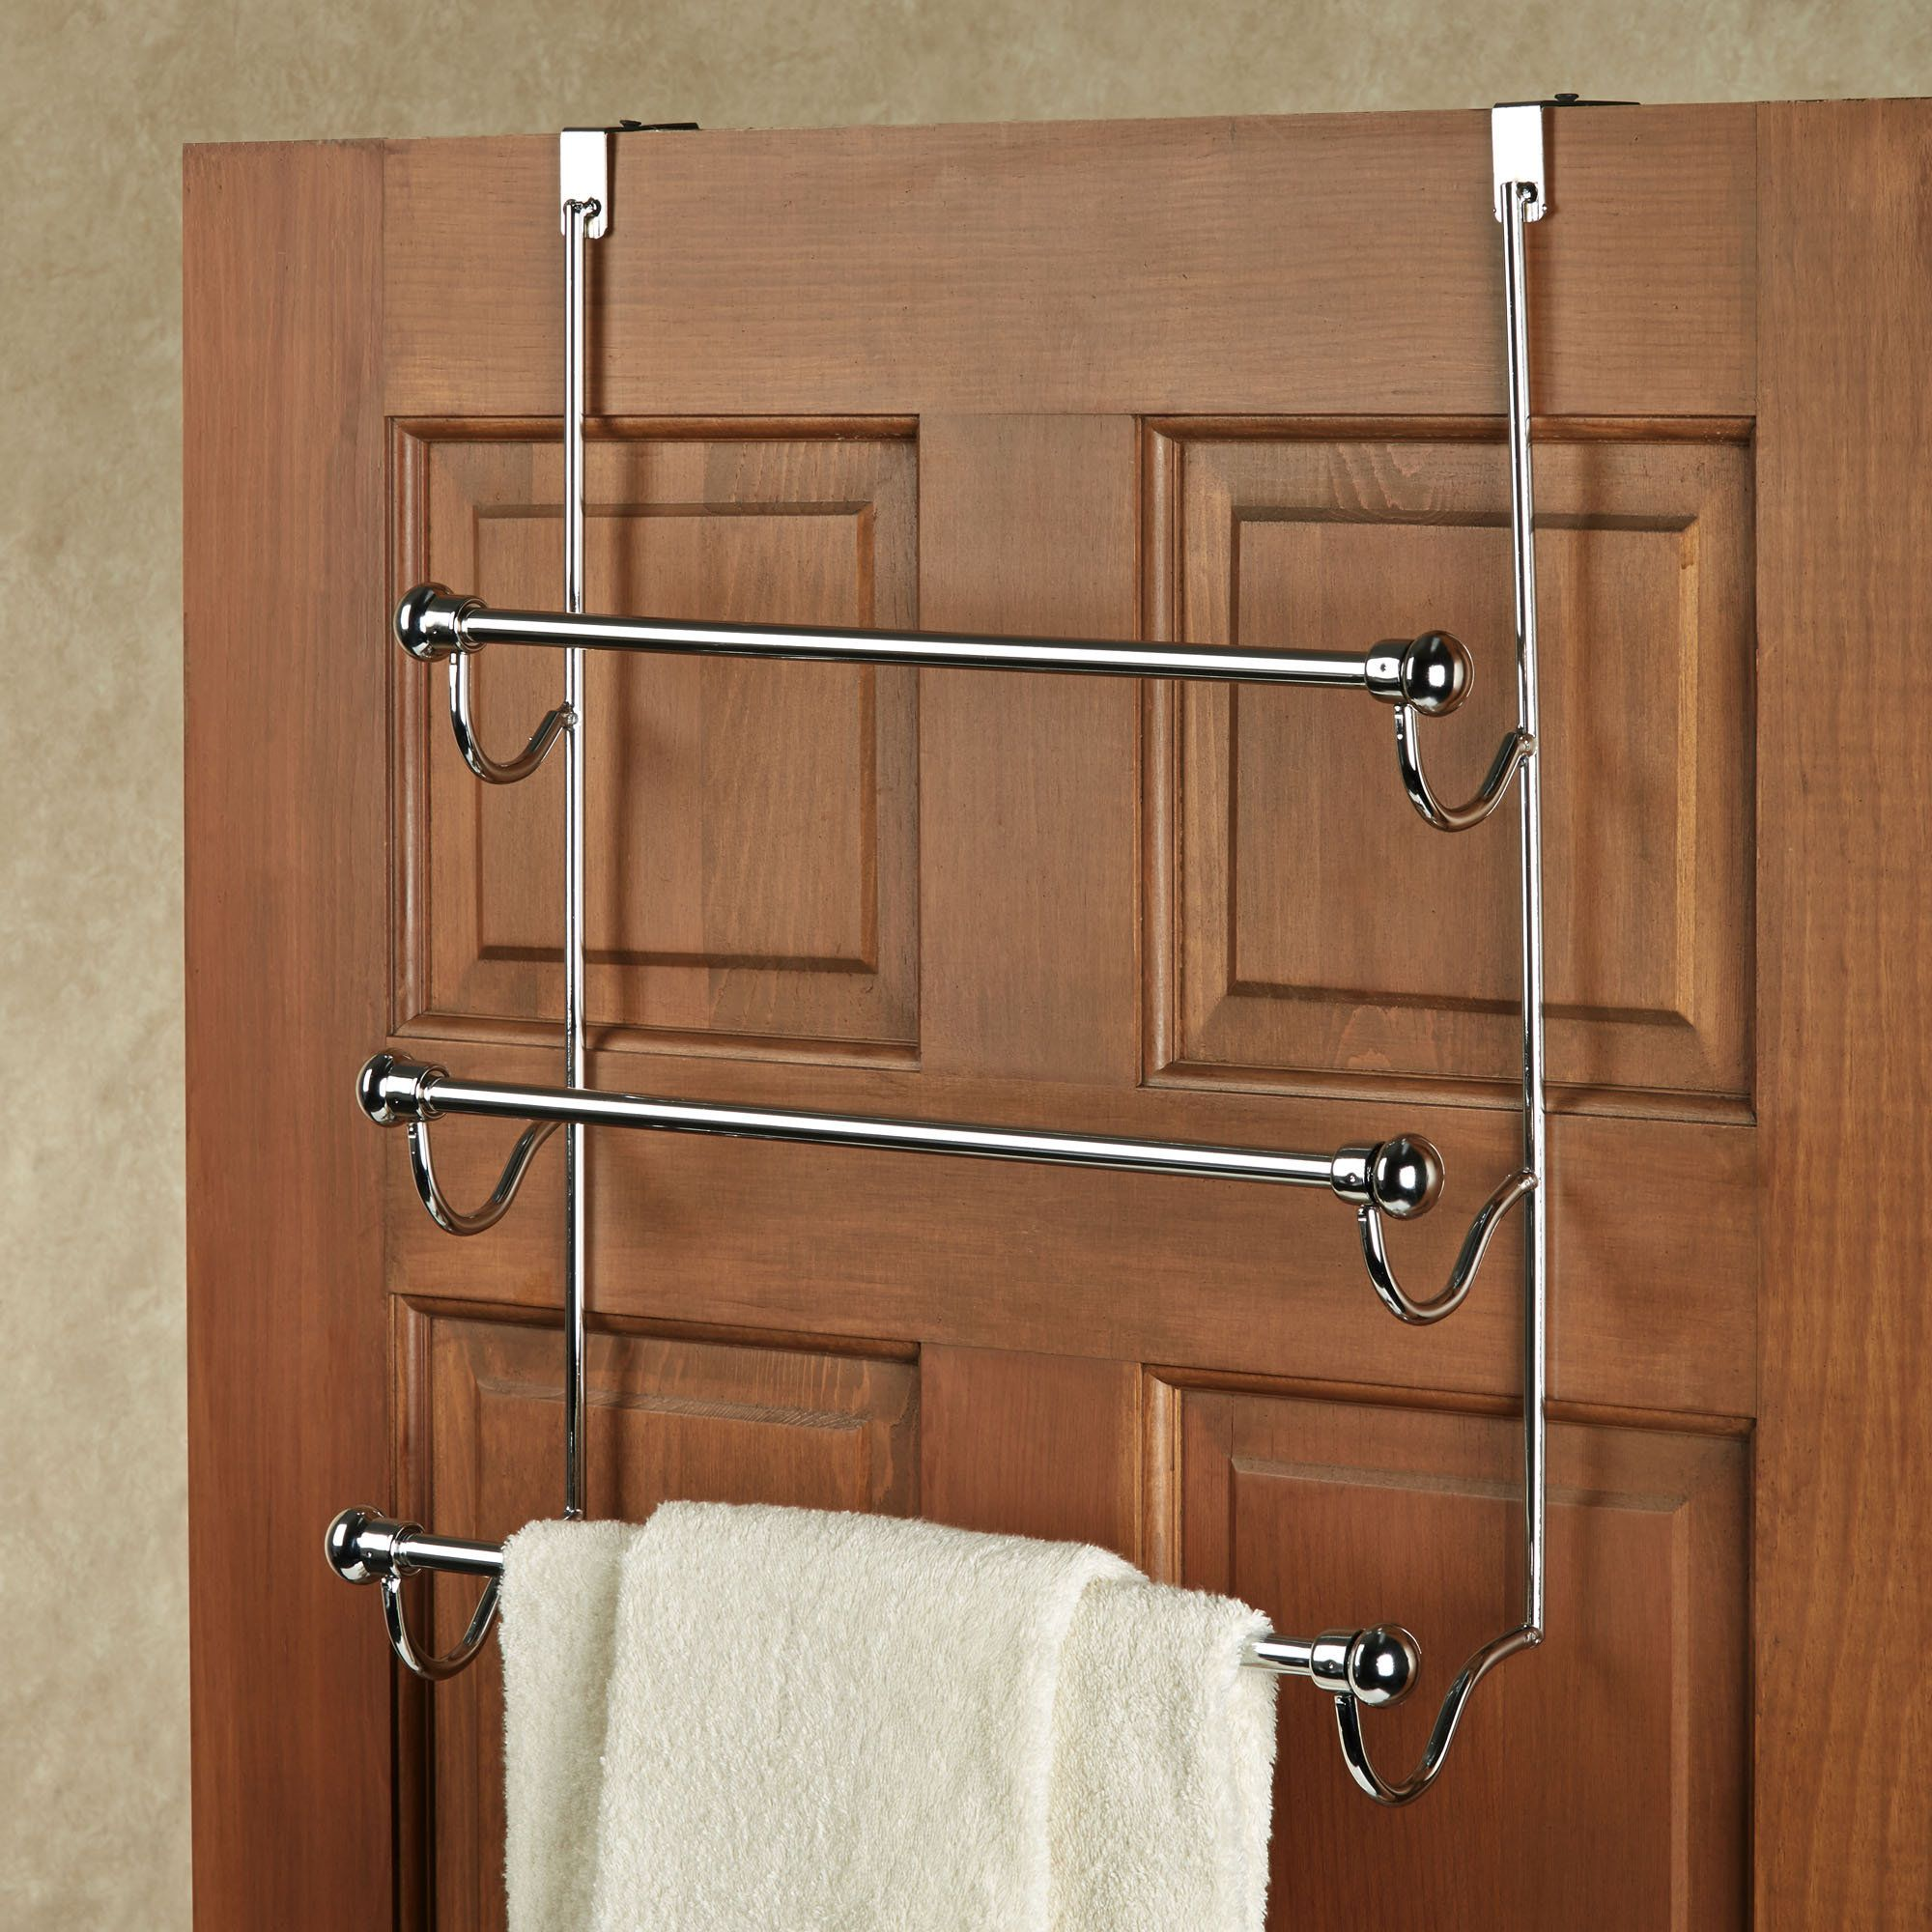 Over The Door Chrome Towel Rack Bath Towel Racks Towel